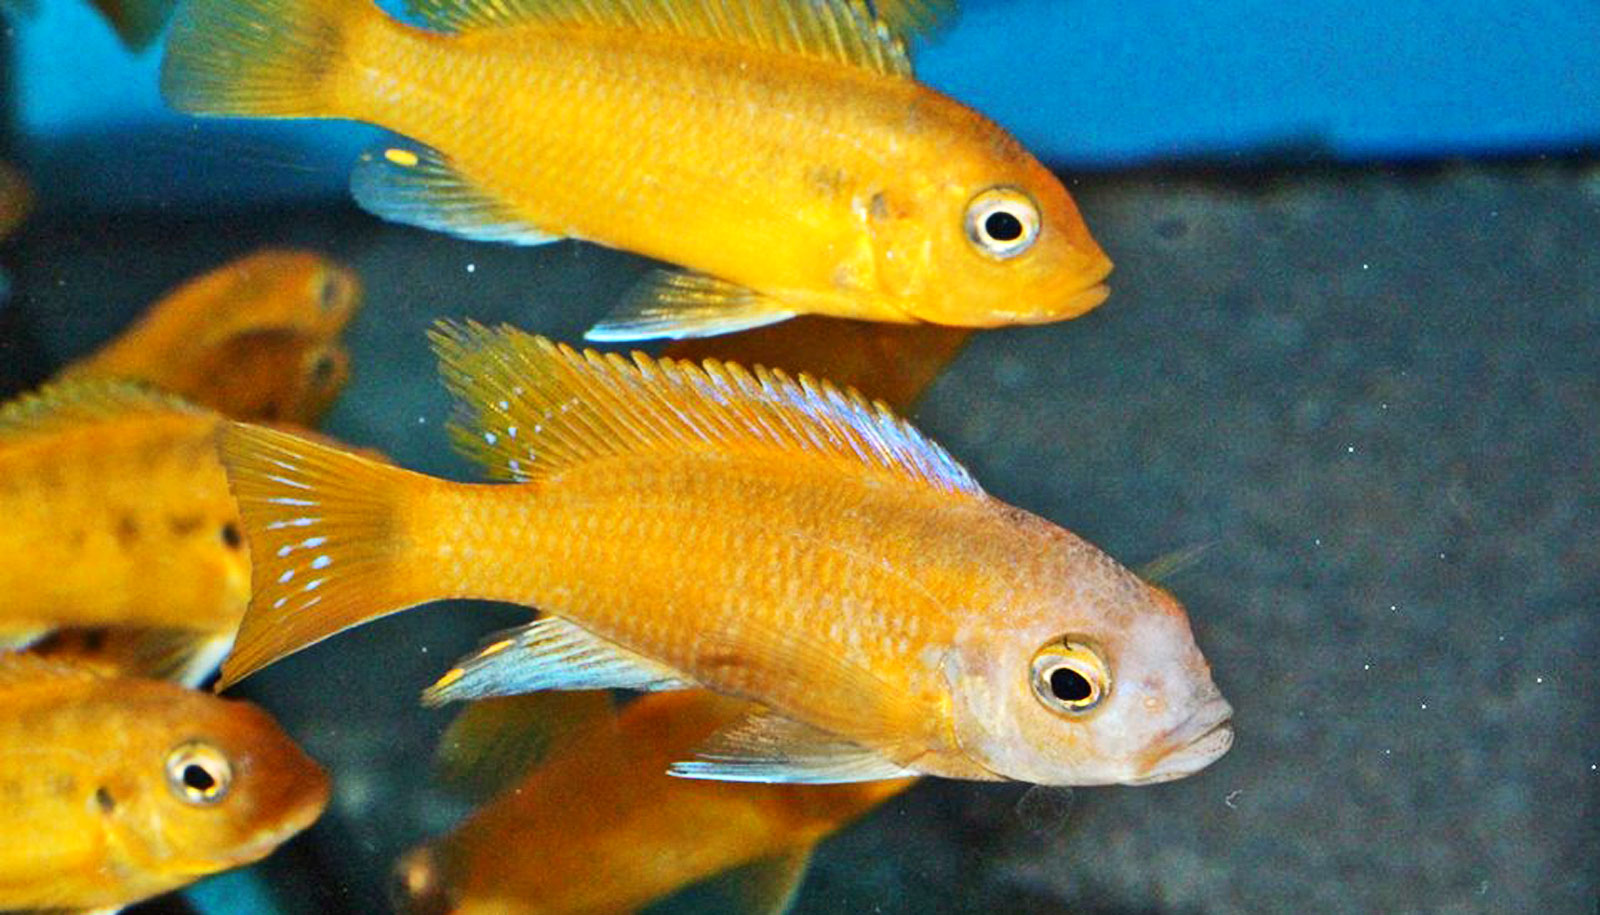 Deep, clear lake water let cichlids branch out